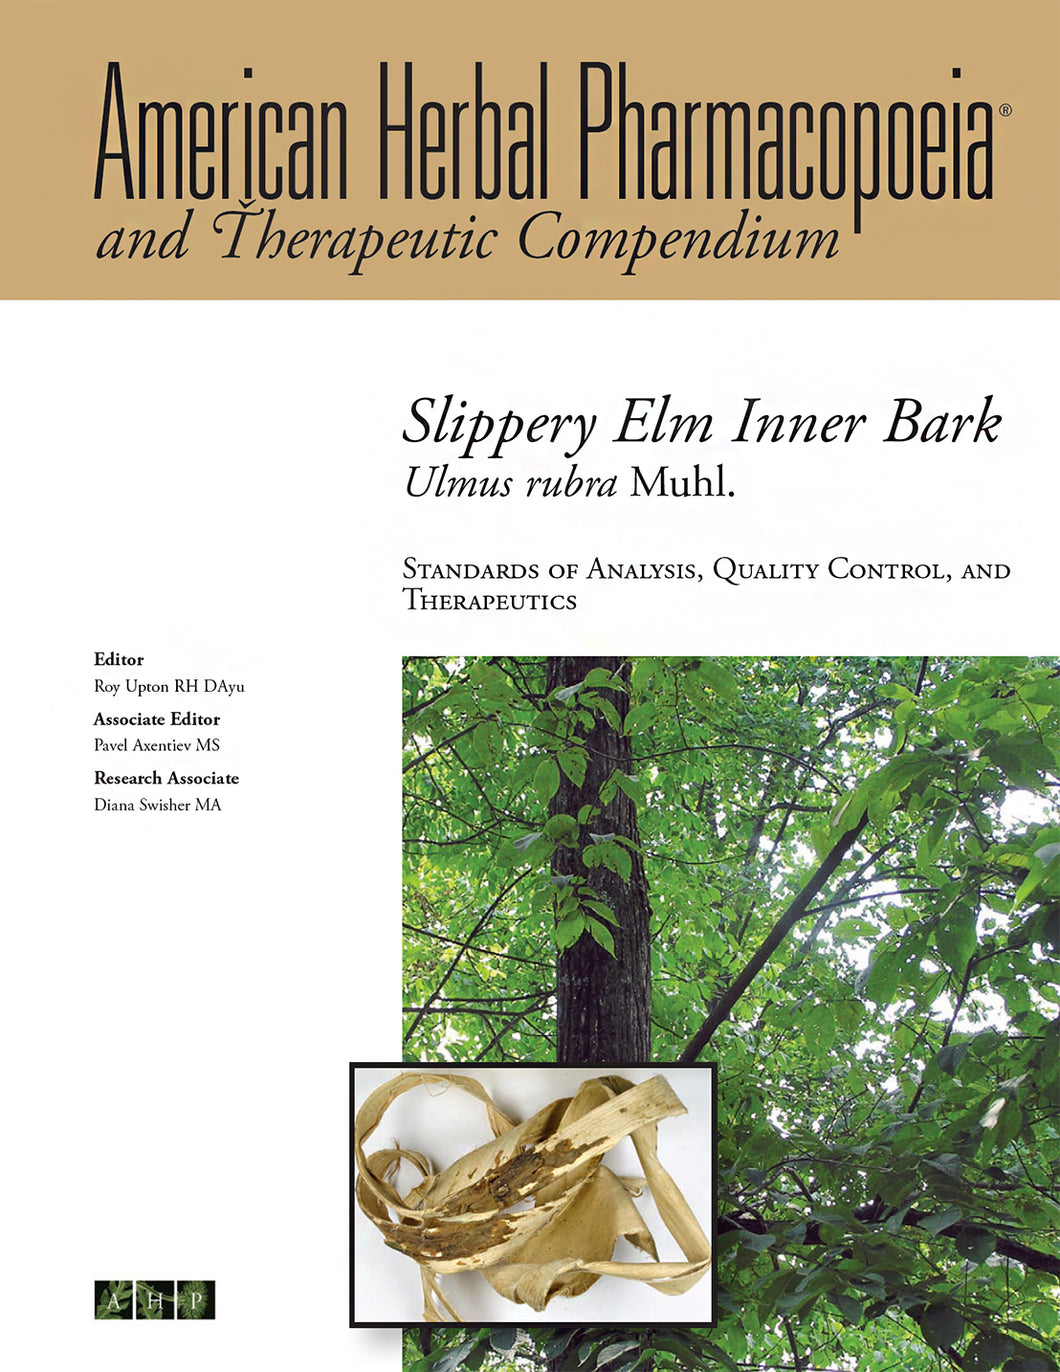 Slippery Elm Inner Bark